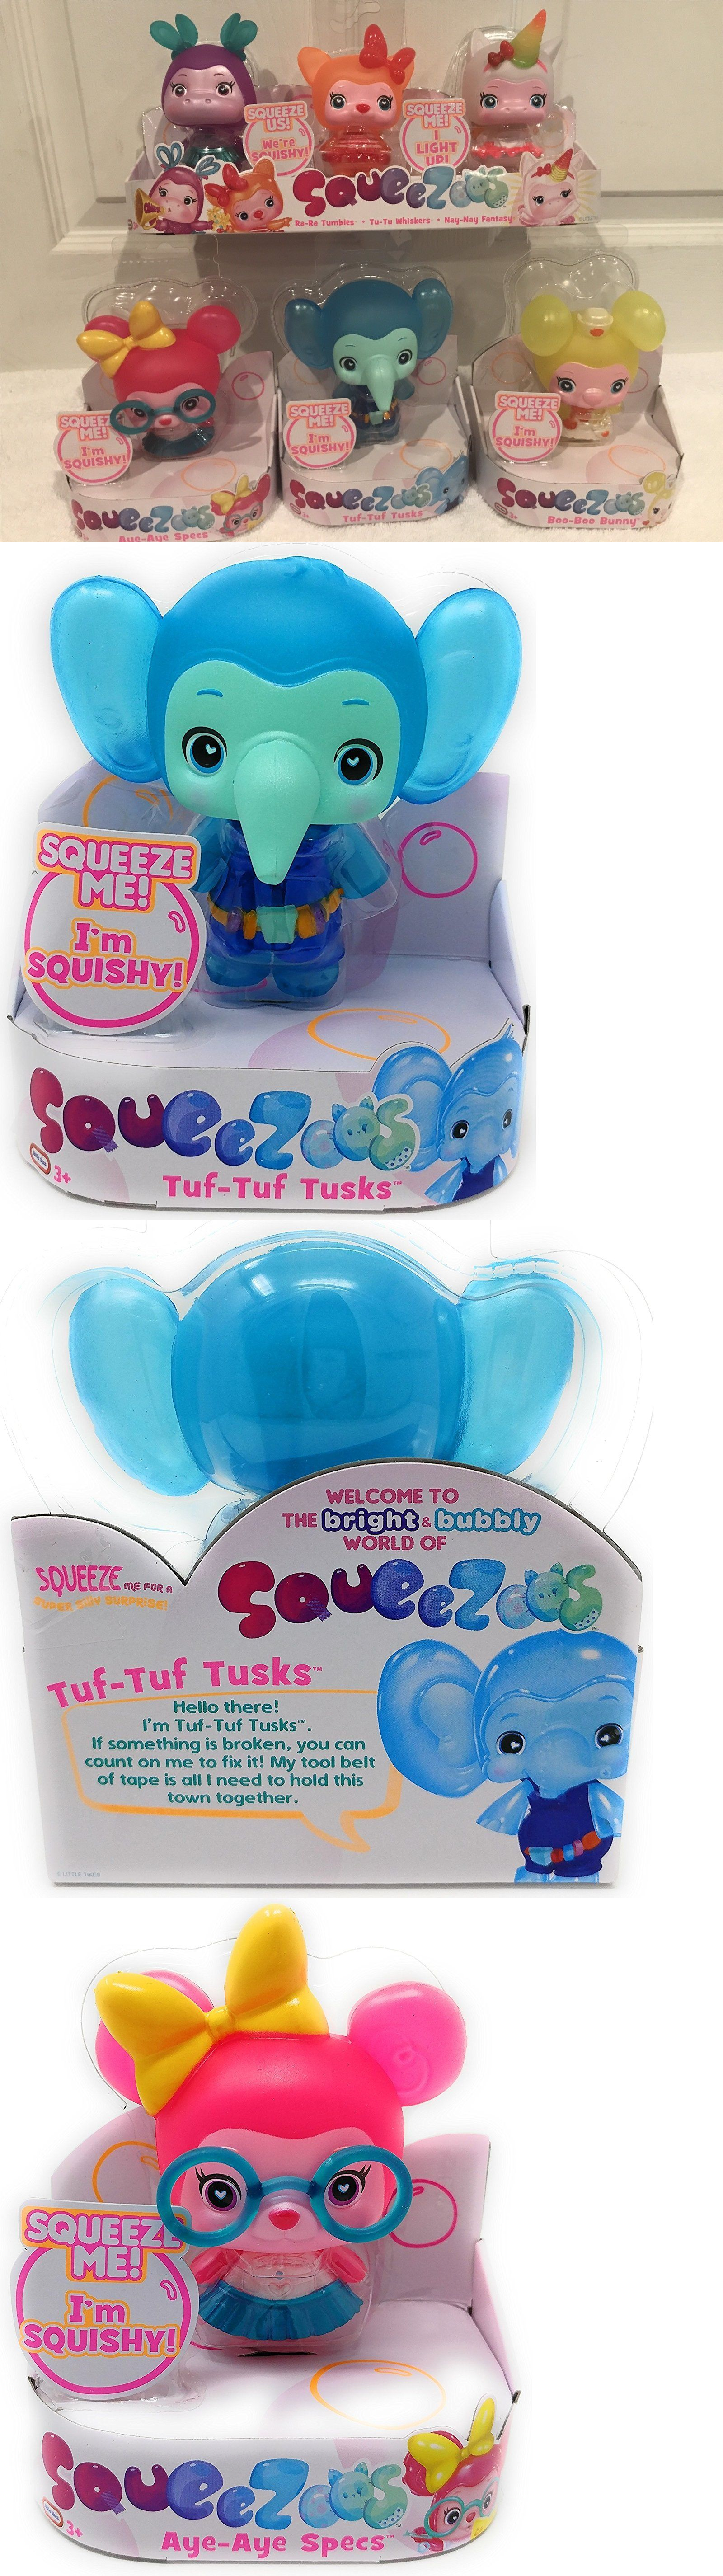 child size 2574 little tikes squeezoos complete set 6 small